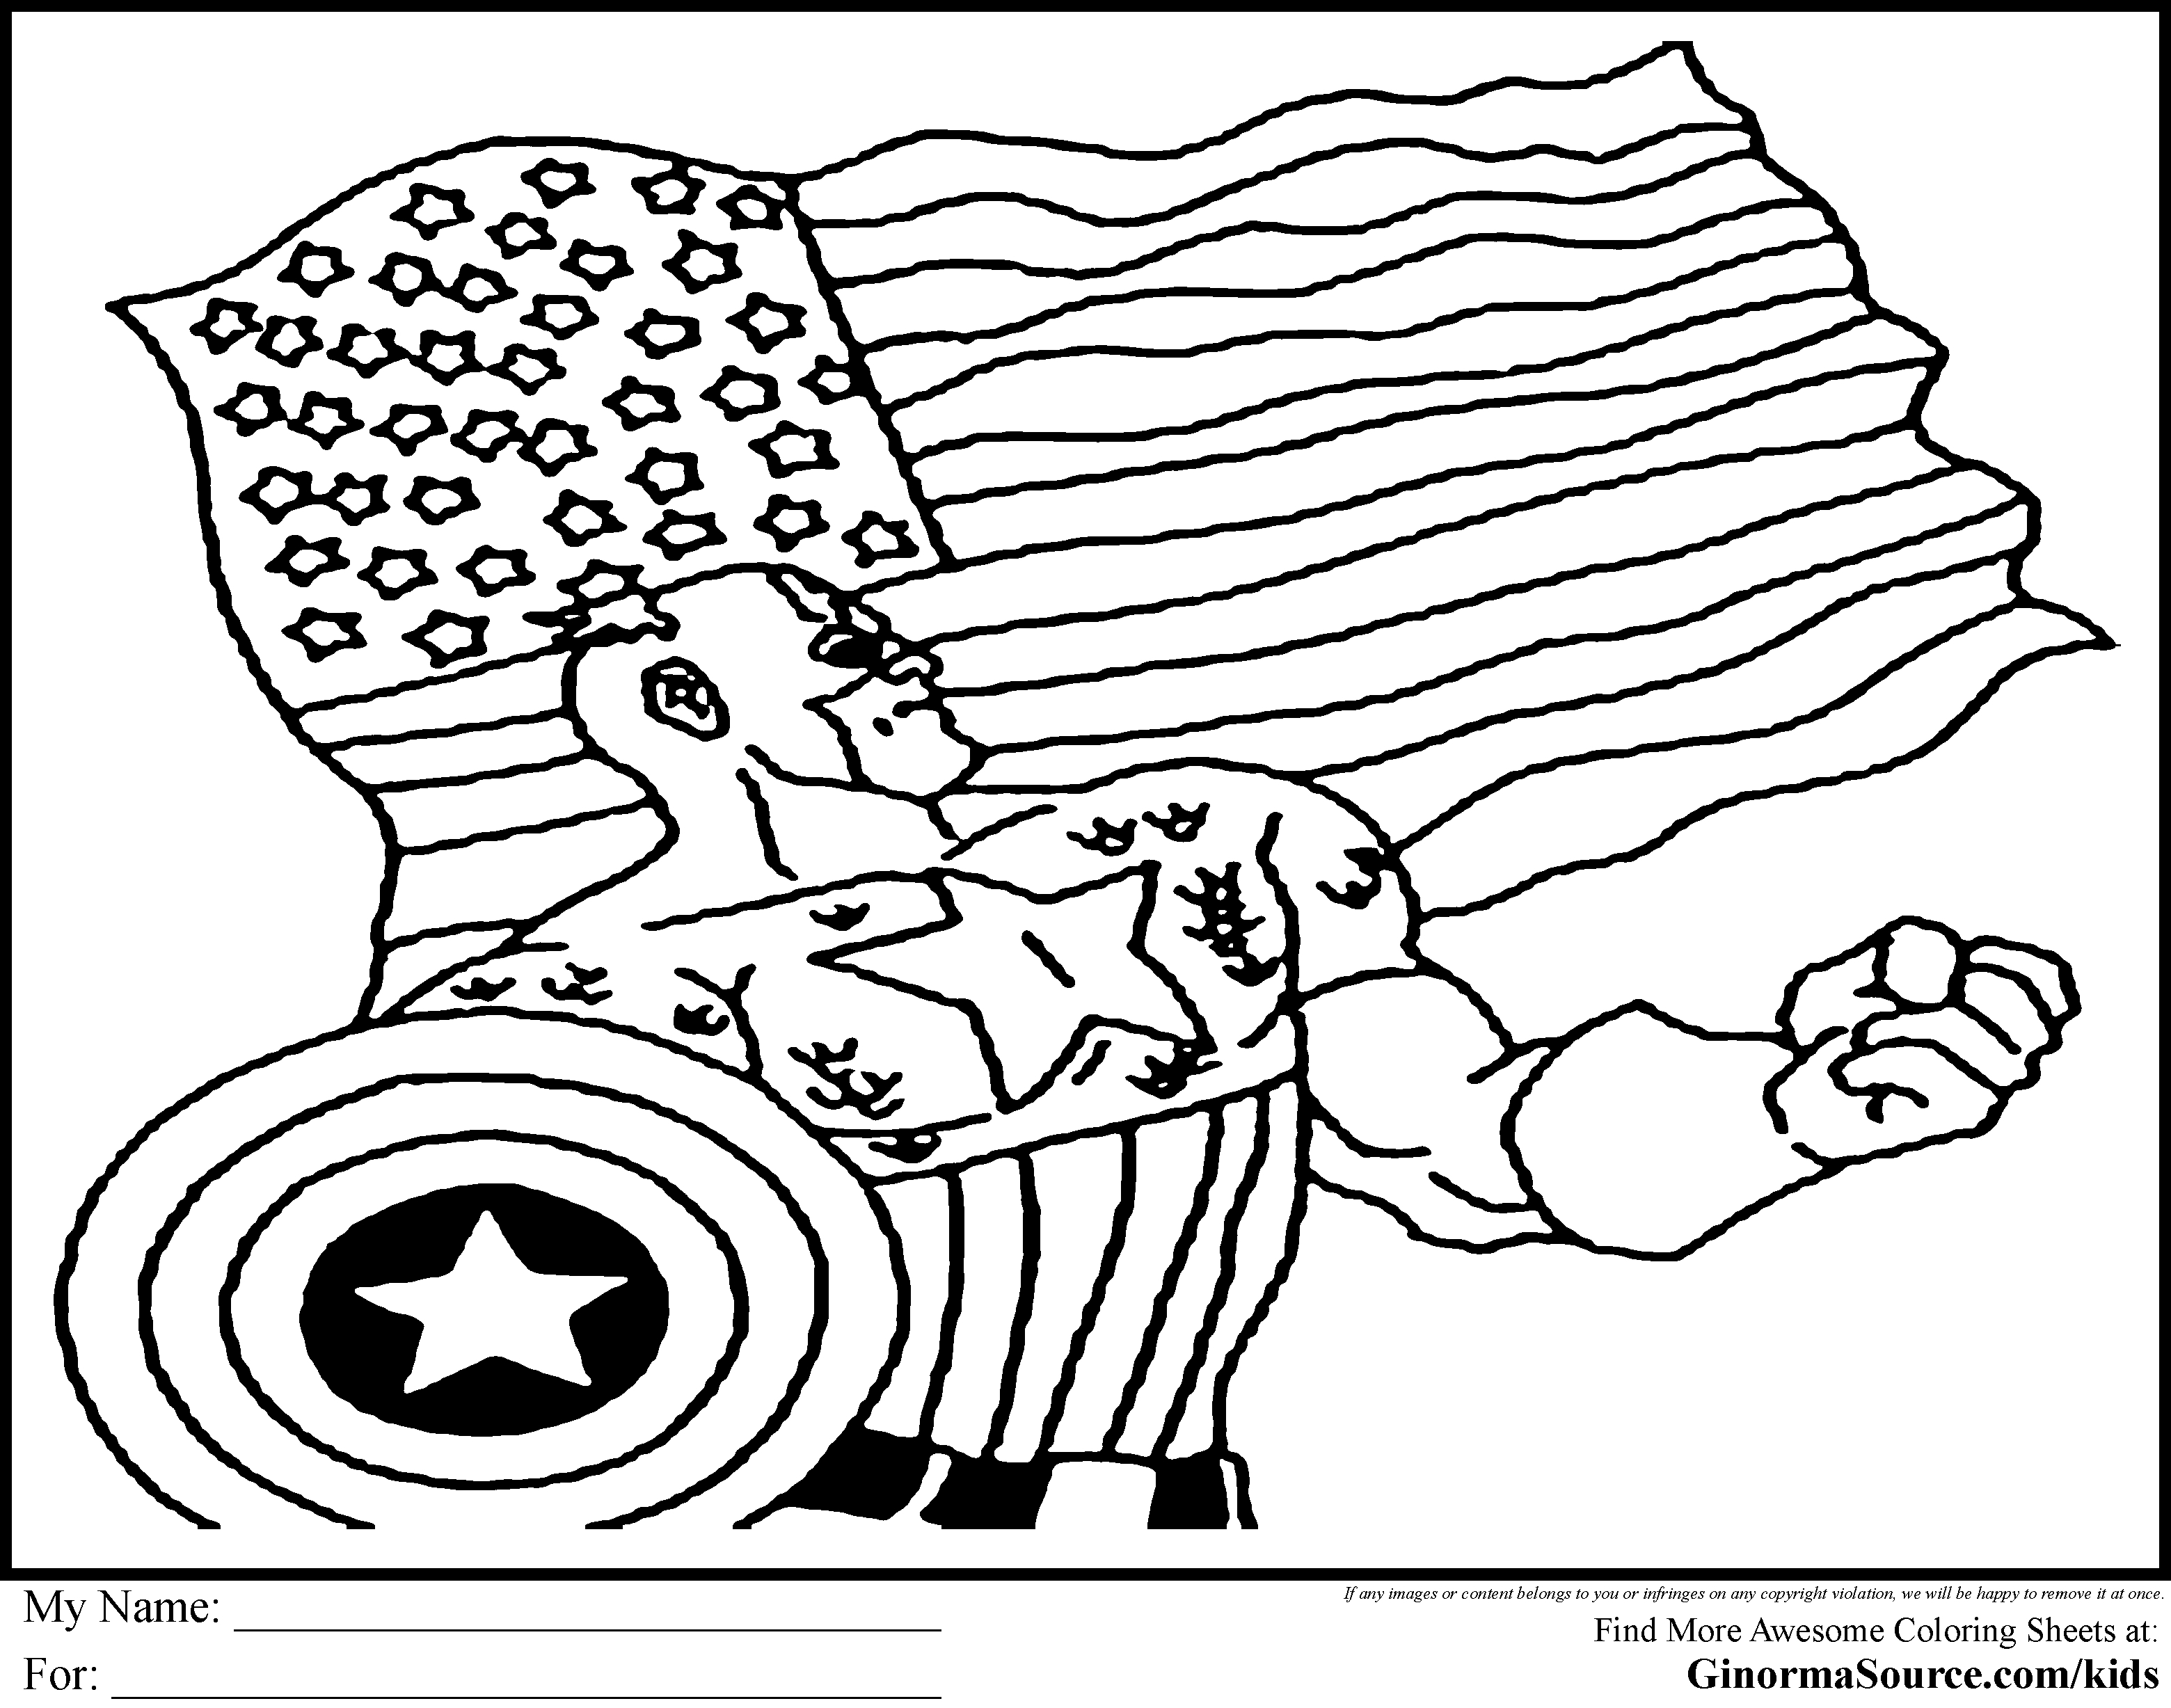 Captain America Winter Soldier Coloring Pages Captain America The Winter Soldier Coloring Pages